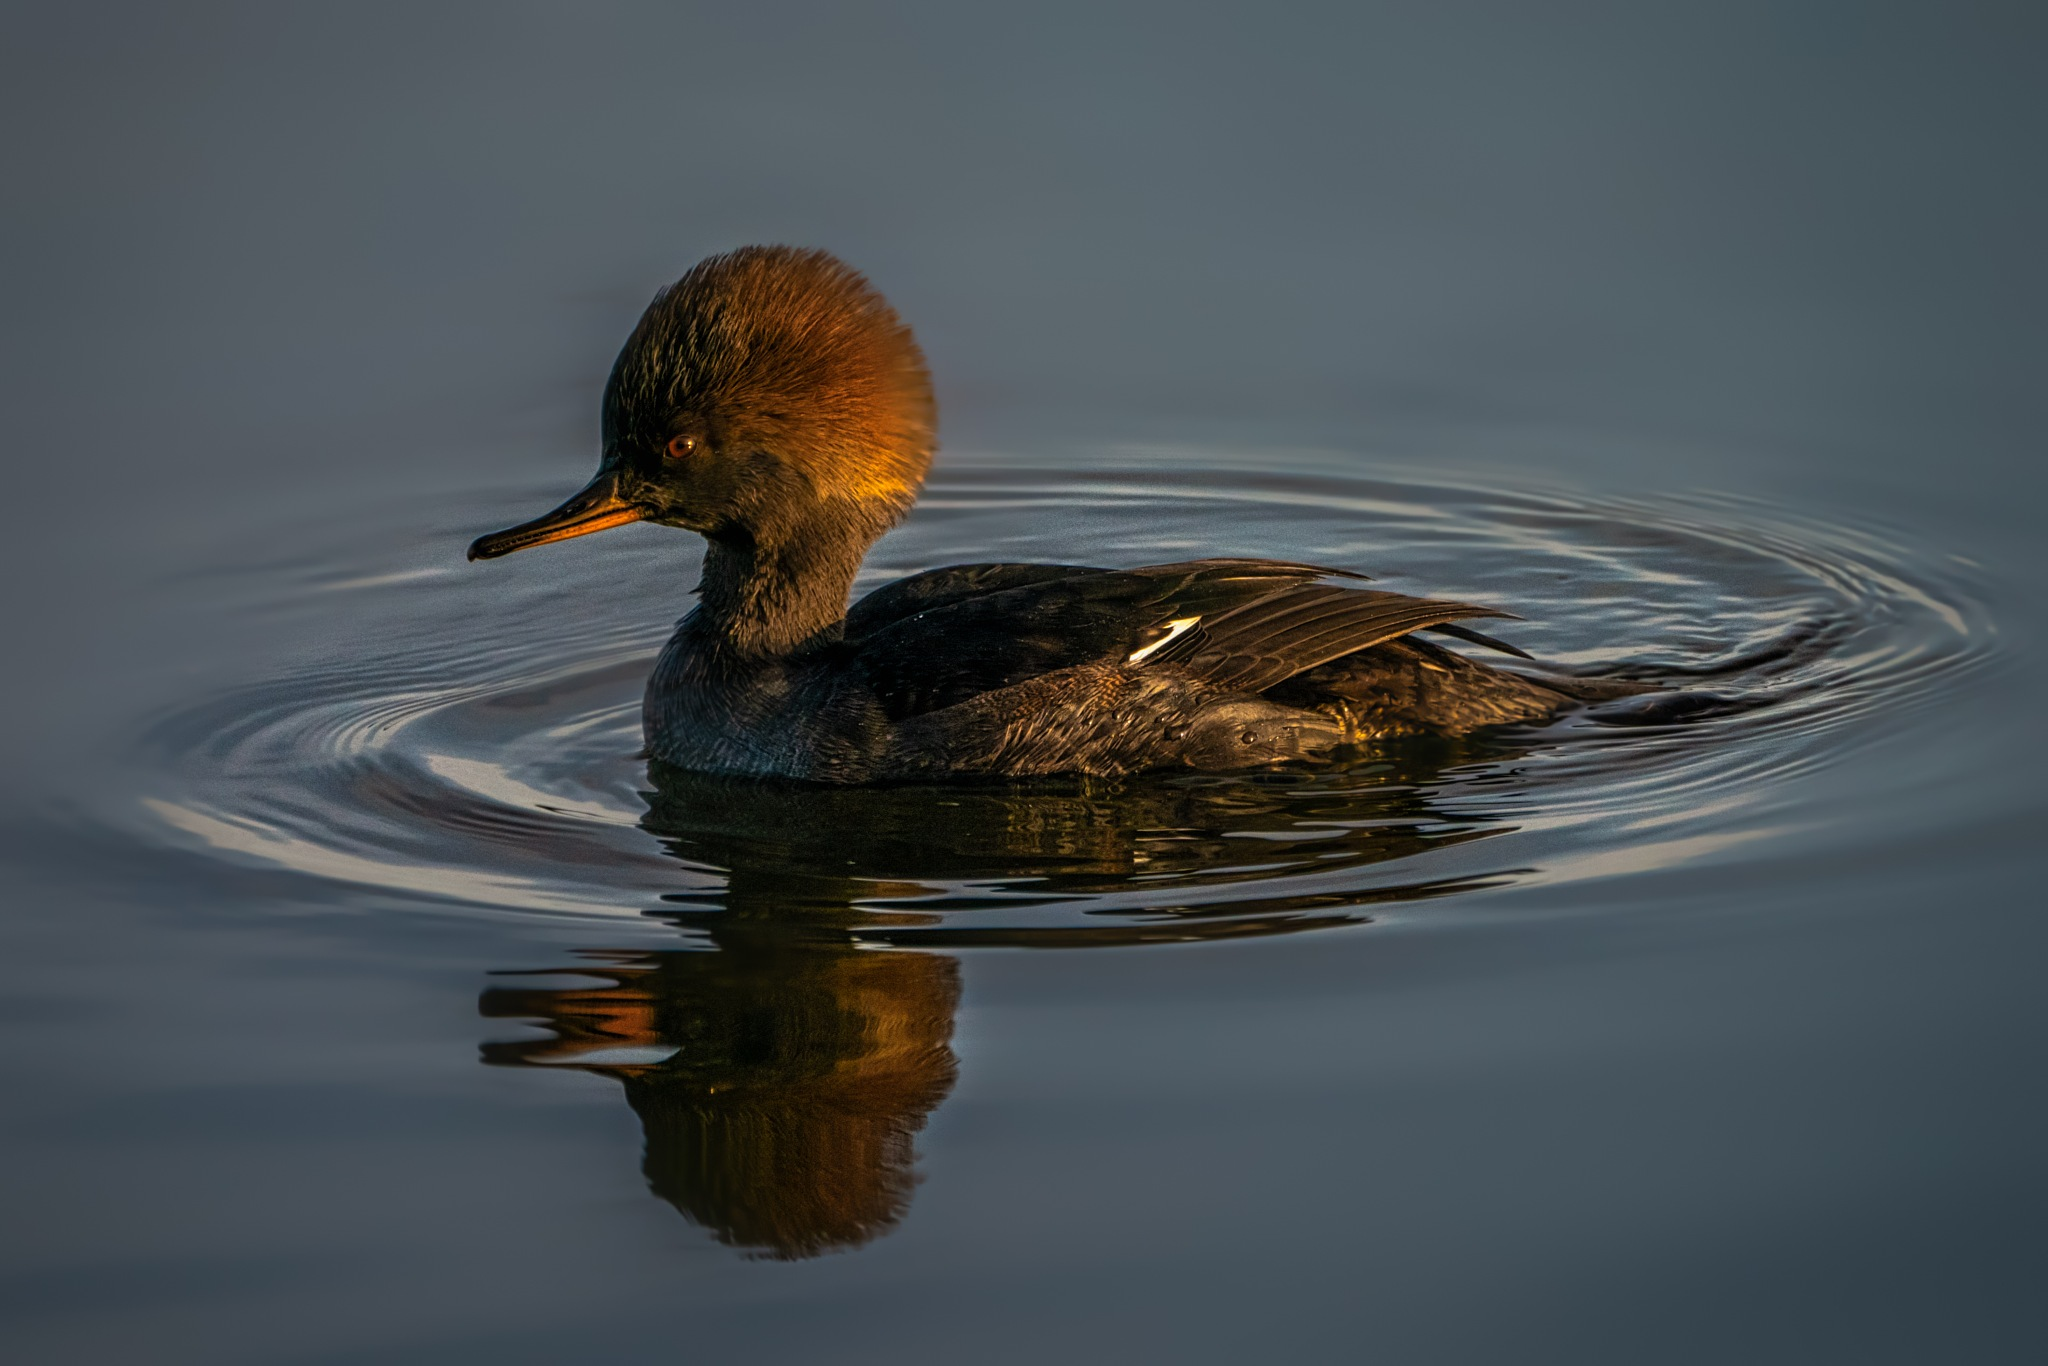 Hooded merganser at sunset by Boris Droutman